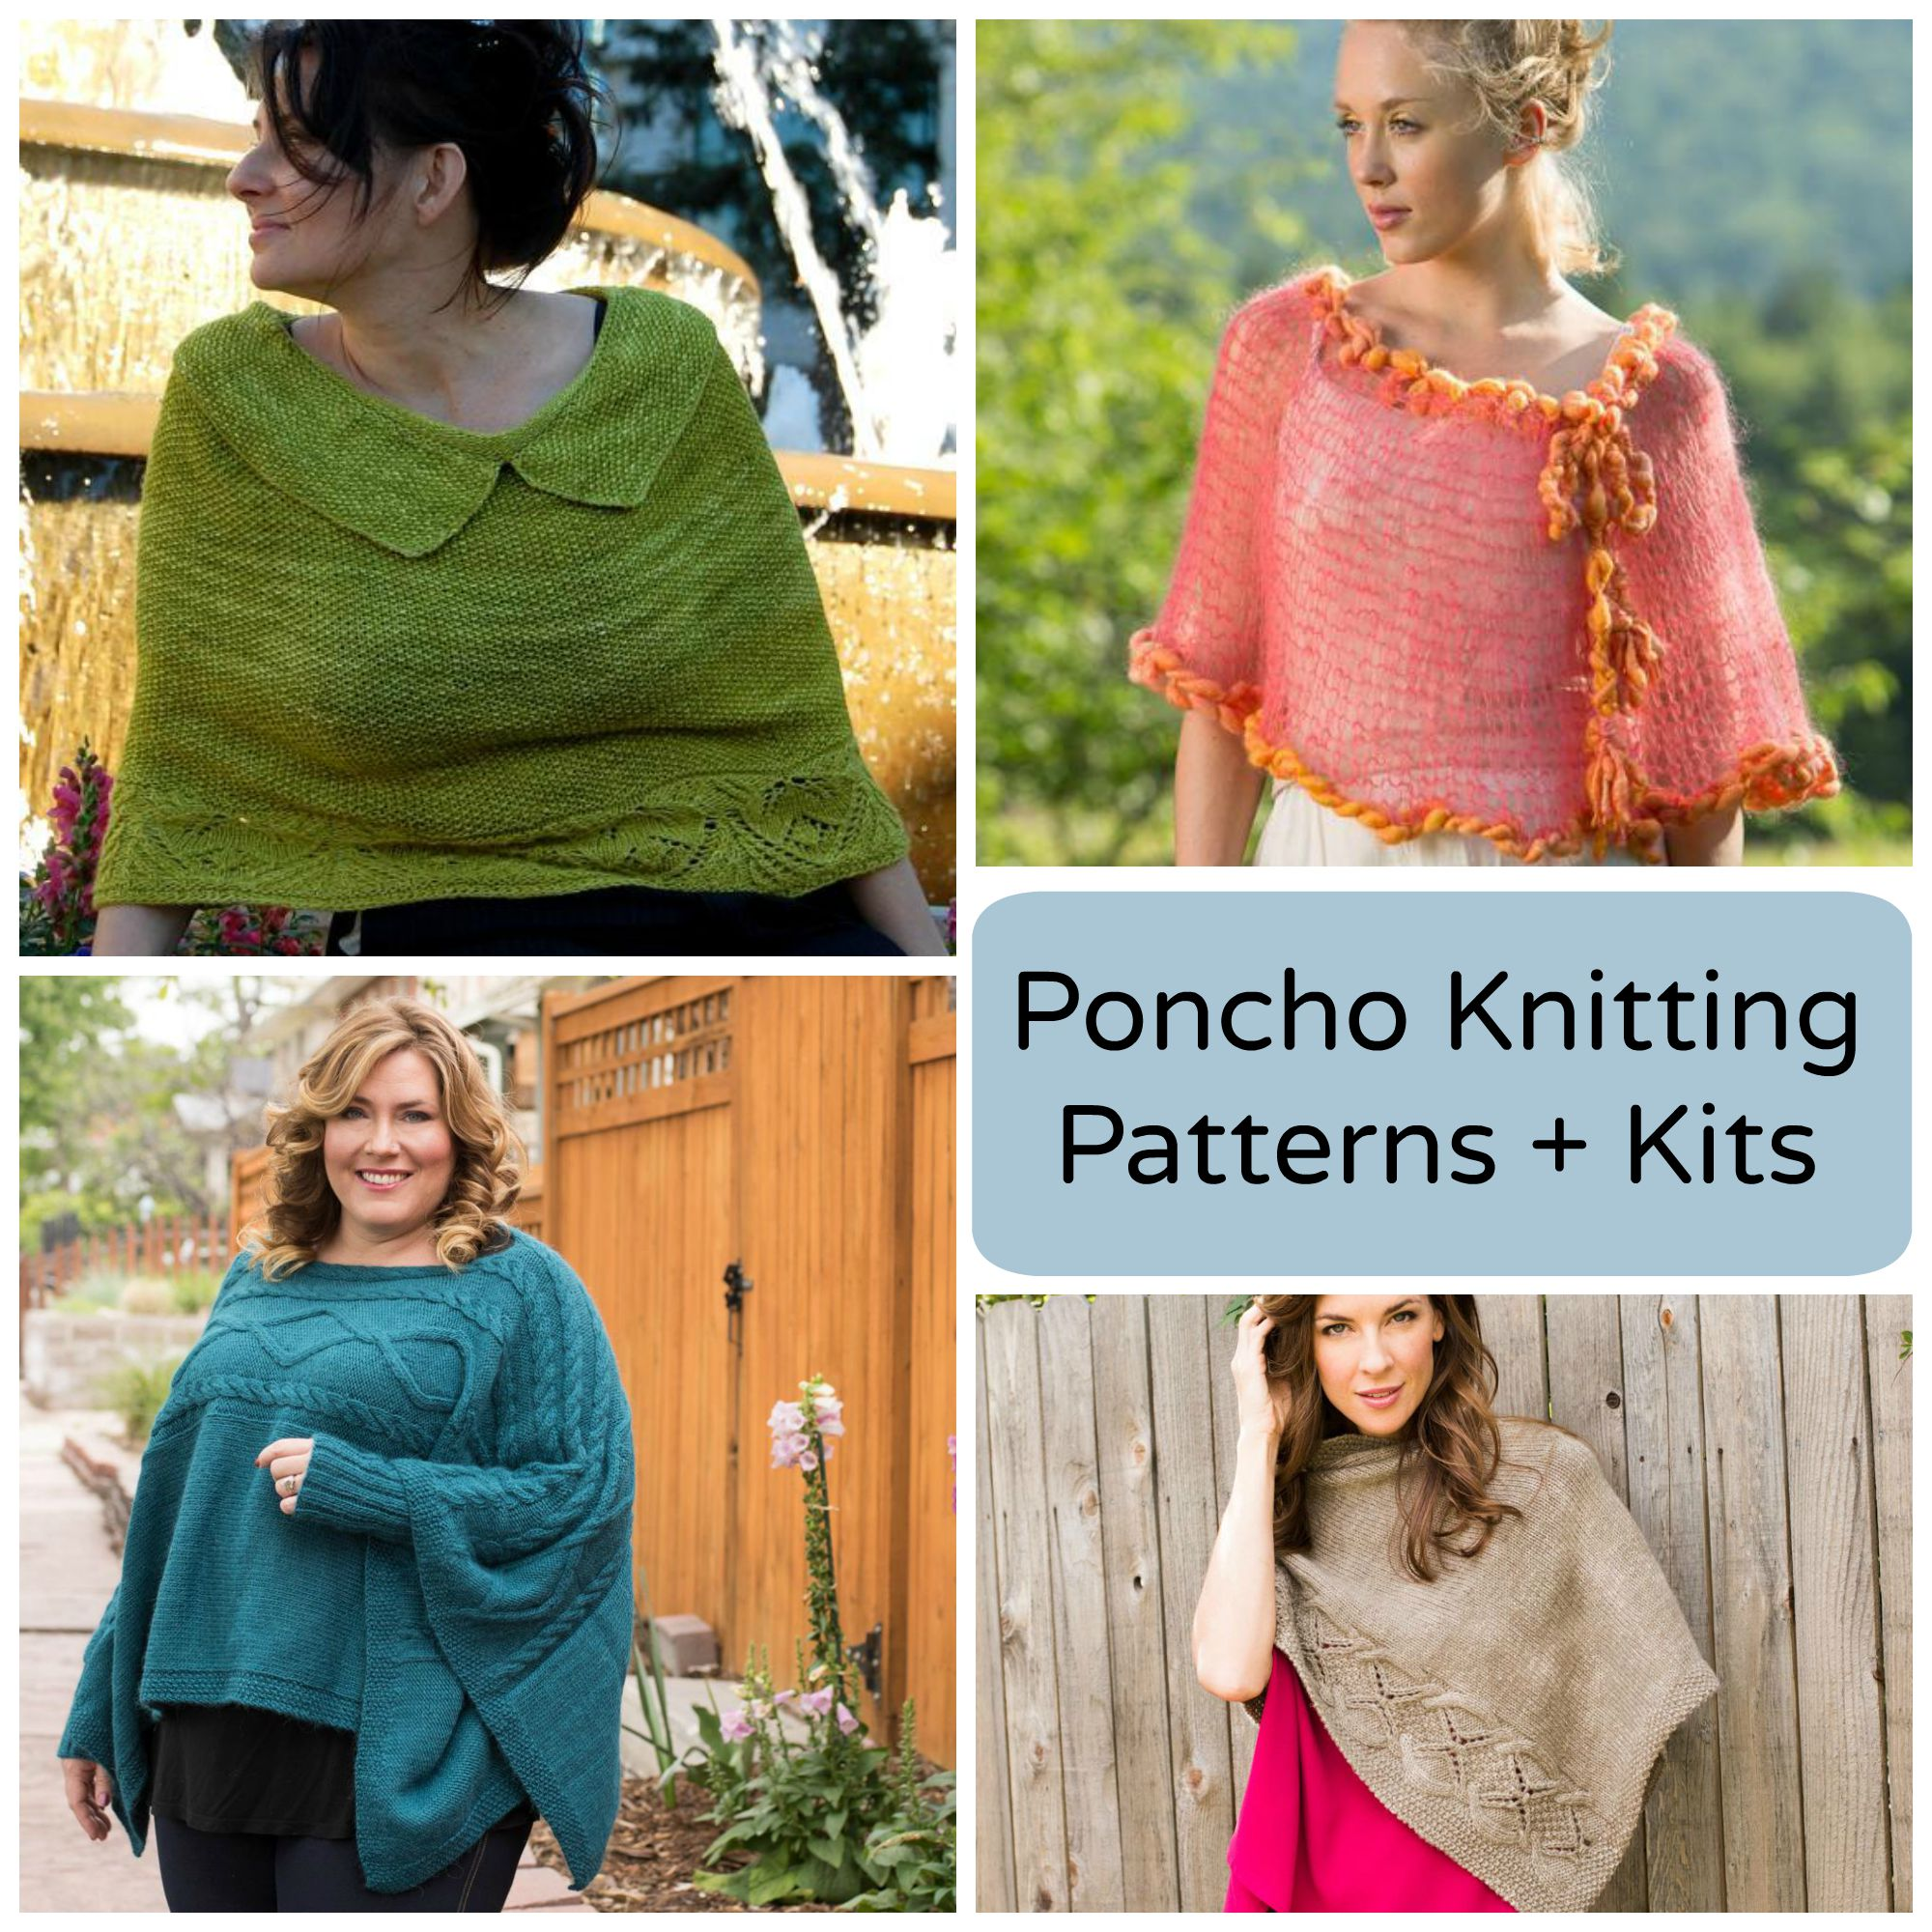 Poncho Knitting Patterns and Kits